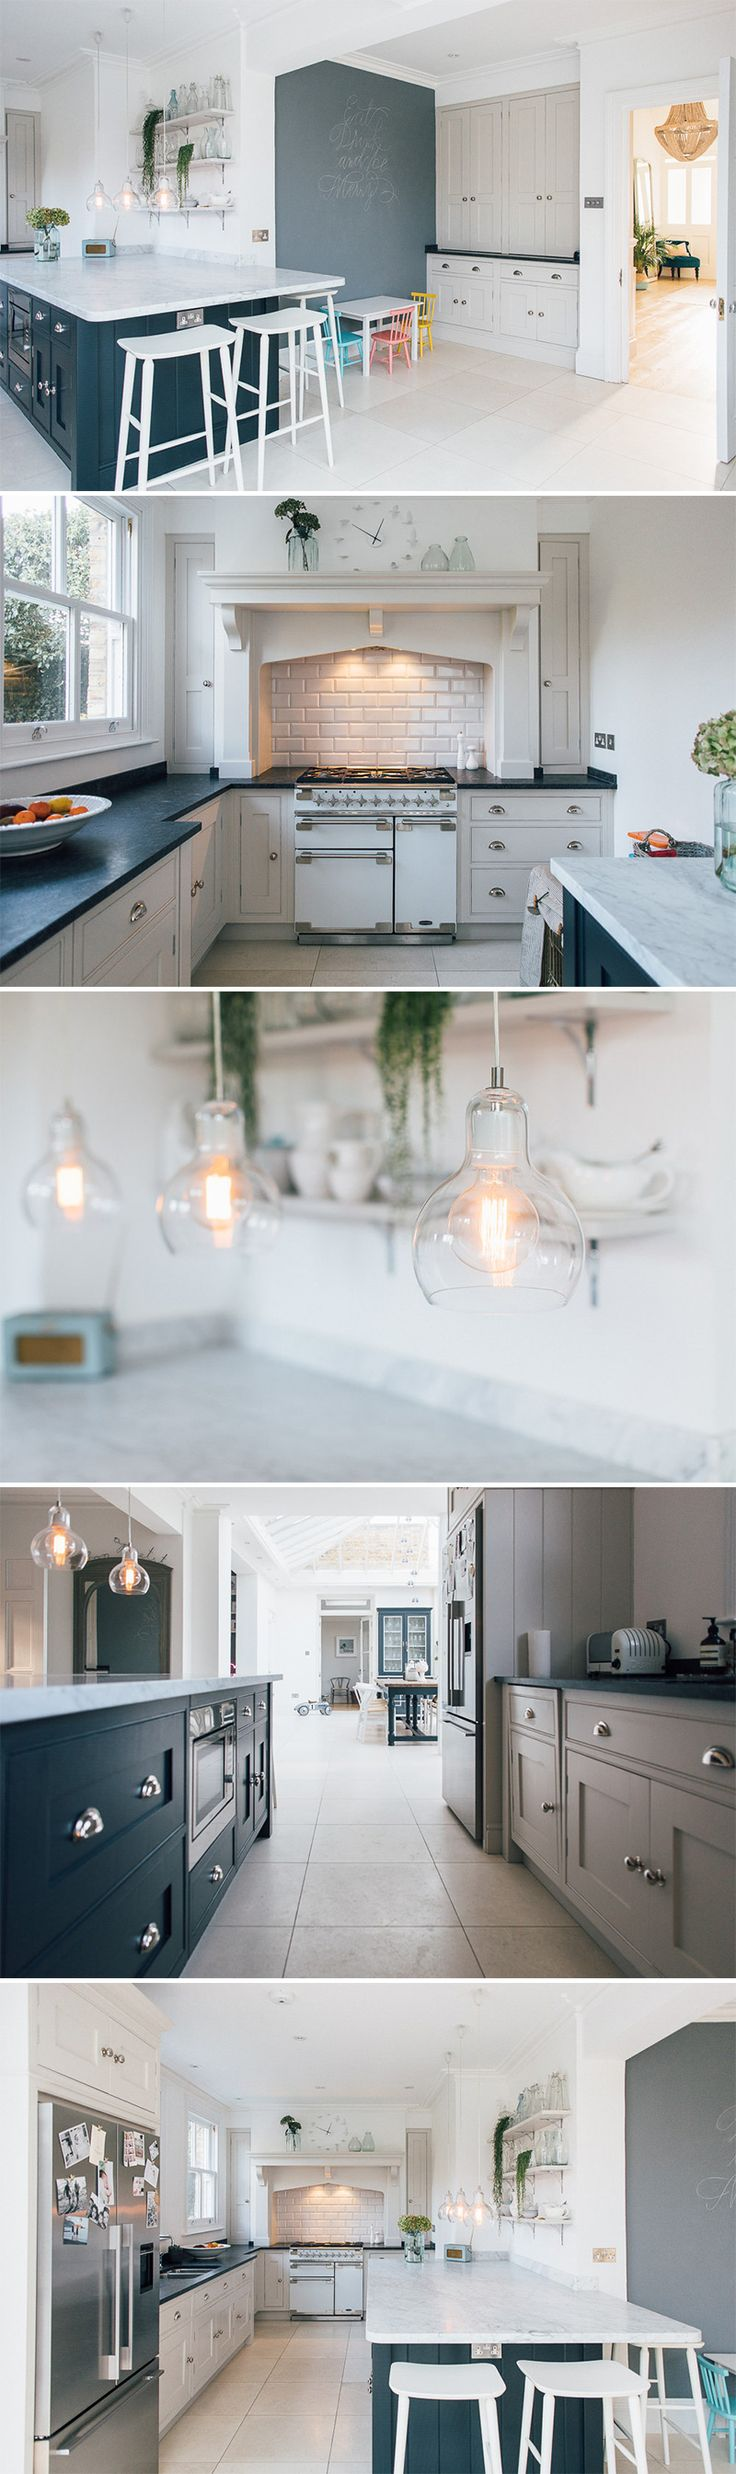 Timeless Classic Kitchen Painted In Farrow And Ball Railings And Slate Iii | Marble kitchen worktops | kitchen bar stools | chalkboard wall in kitchen | kids dining area in kitchen | kitchen lighting ideas | Glass pendant kitchen lights | open shelving ideas for a kitchen |